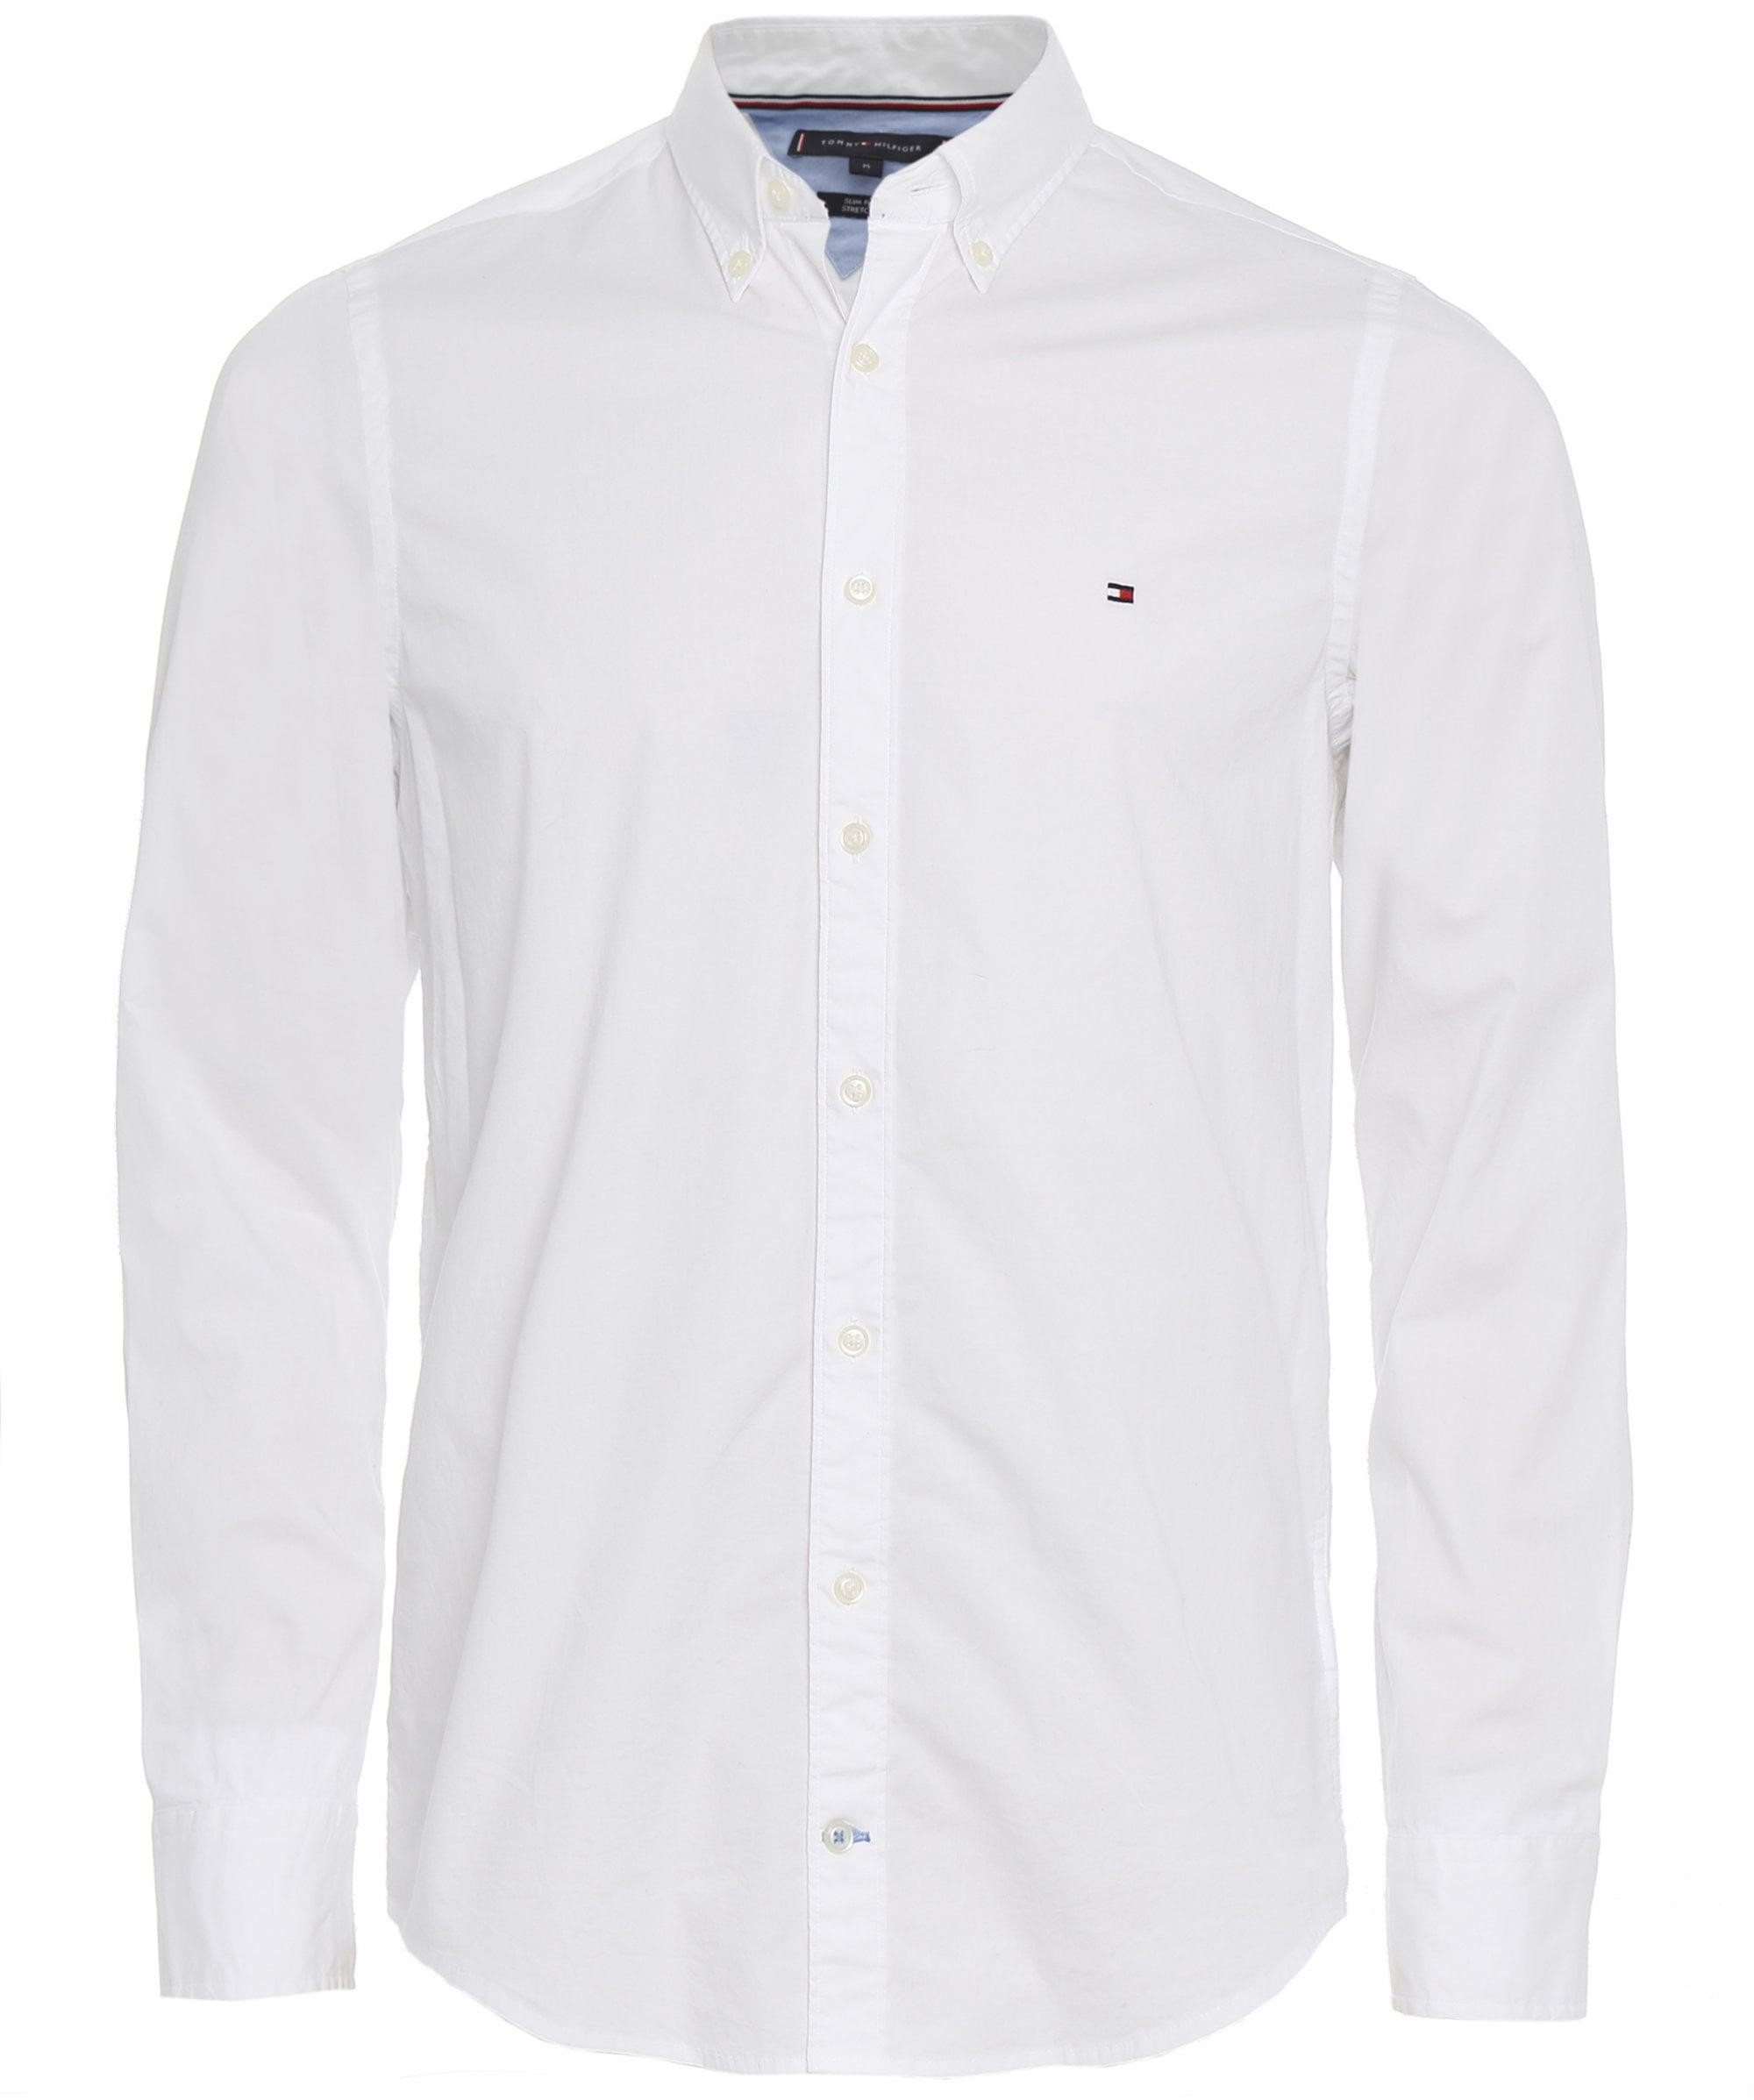 Tommy Hilfiger Slim Fit Poplin Shirt in White for Men - Save ... 49ce7d00ff7